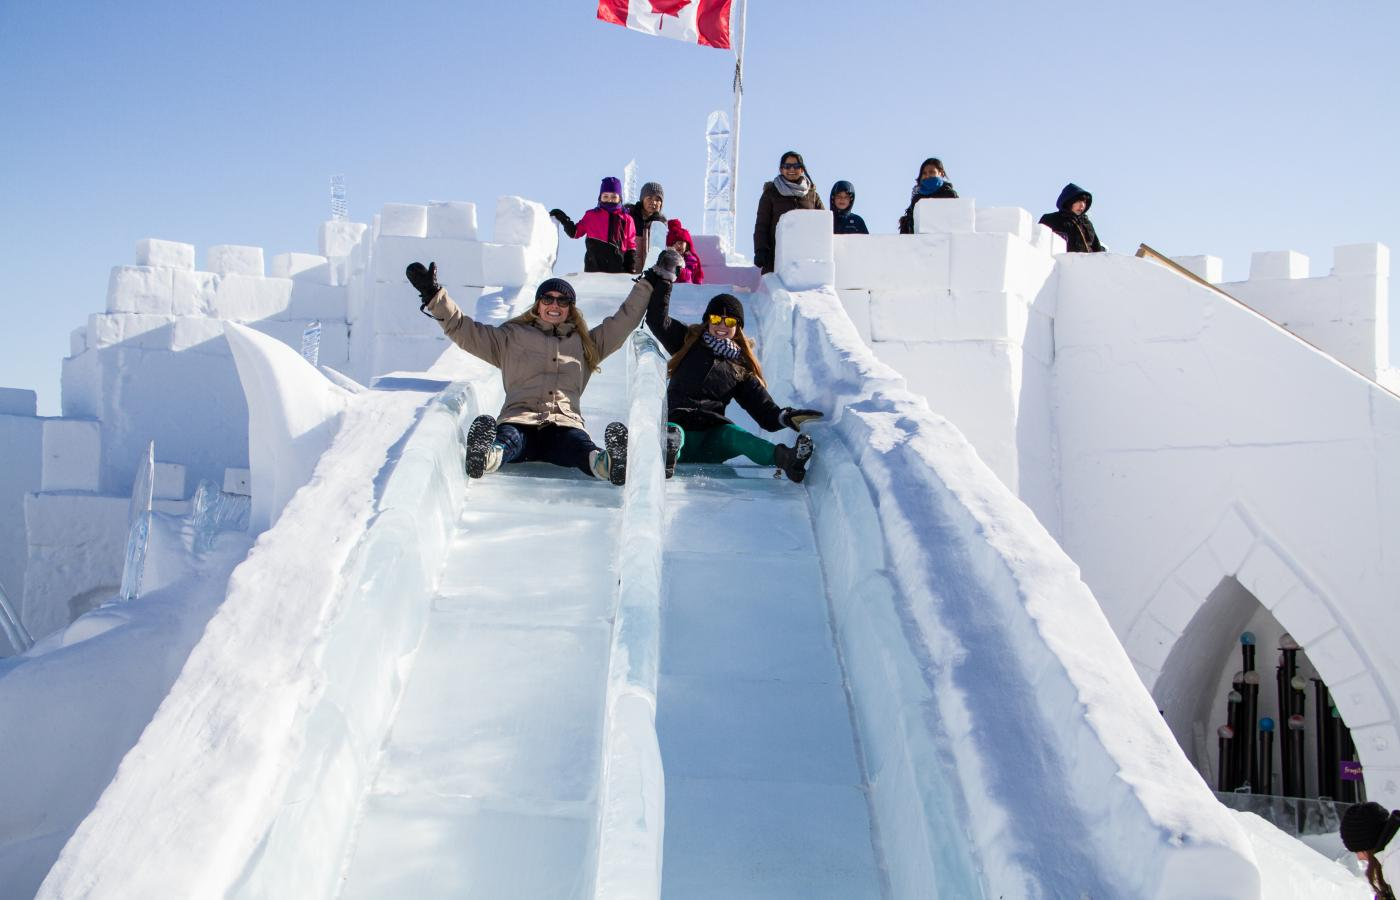 2 people slide down a tandem ice slide at the snowking festival on the great slave lake in the Northwest Territories